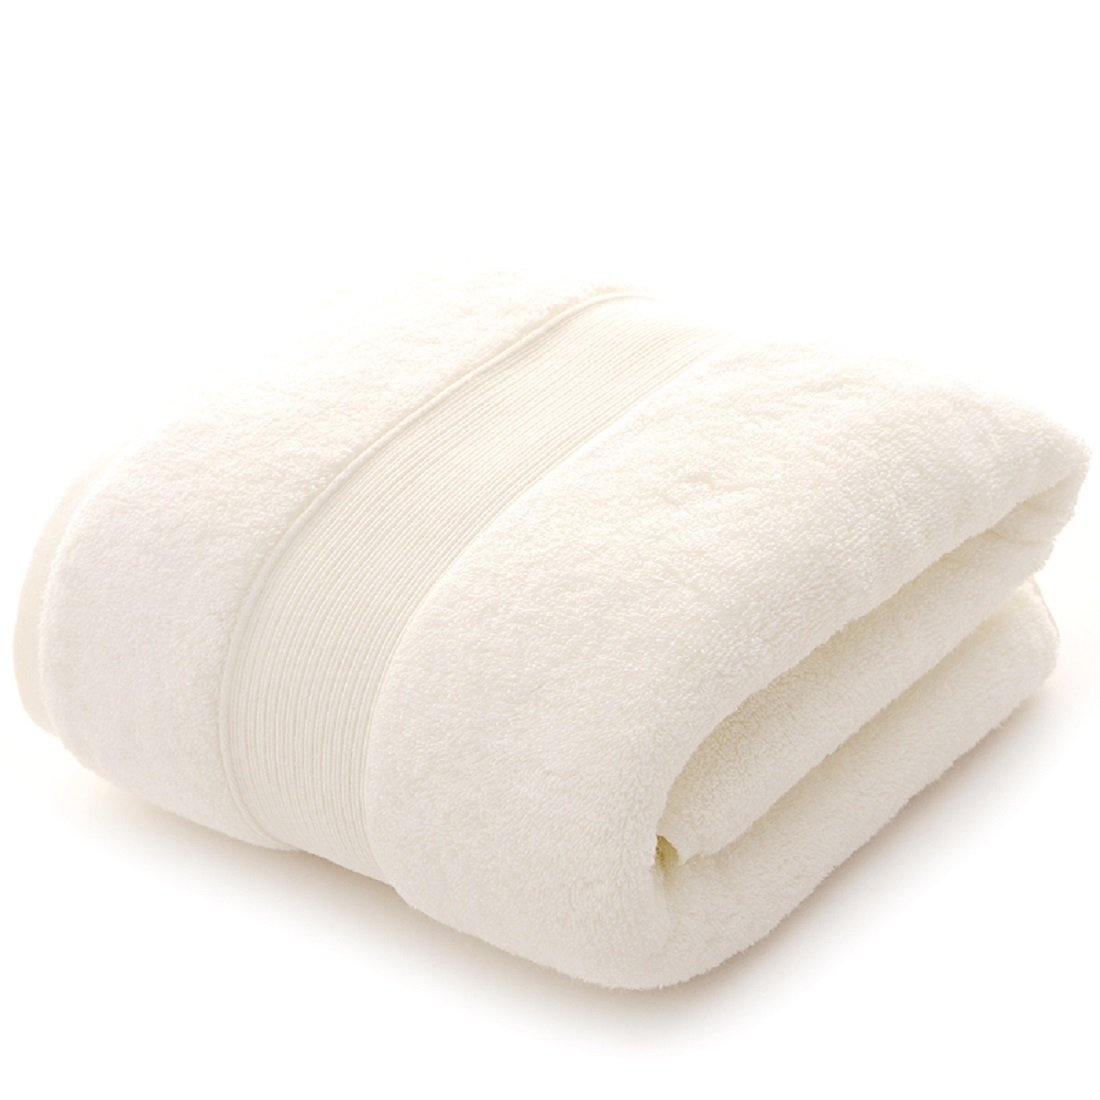 ULIN Bathroom Towels Set Clearance,Combed Cotton Towels, Set of 3,1 Washcloth,1 Hand Towels,1 Bath Towels,Kitchen,Pool,Household,Durable,Absorbent,Comfortable,Extra Large Towel (White)